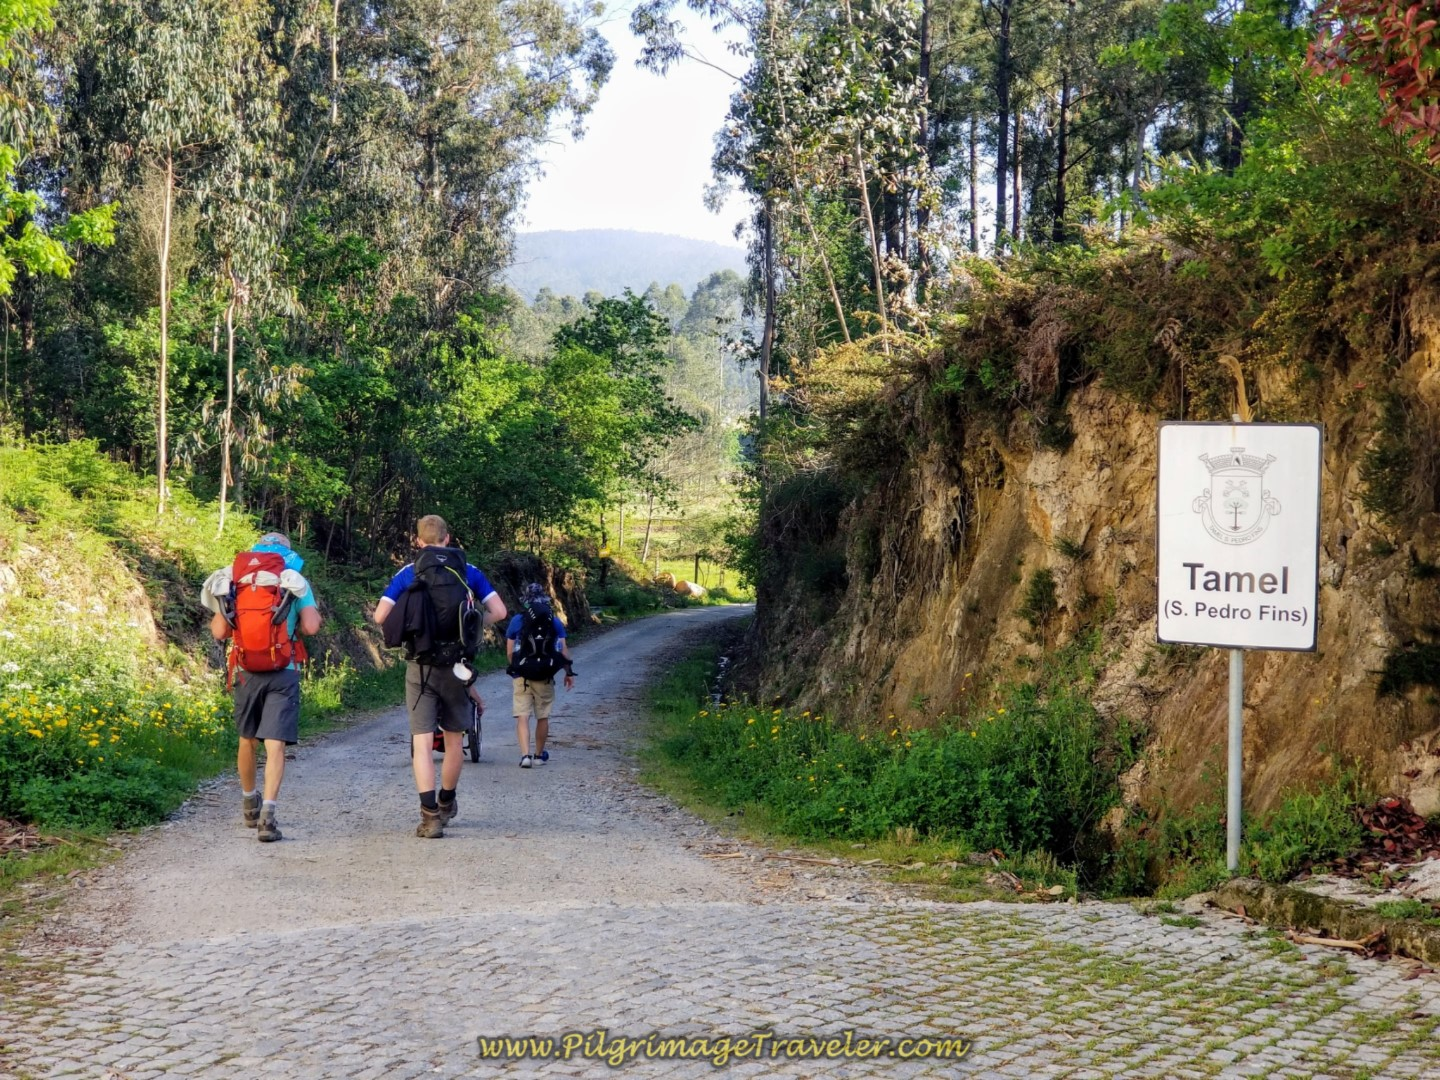 Welcome to Tamel on day seventeen on the Central Route of the Camino Portugués